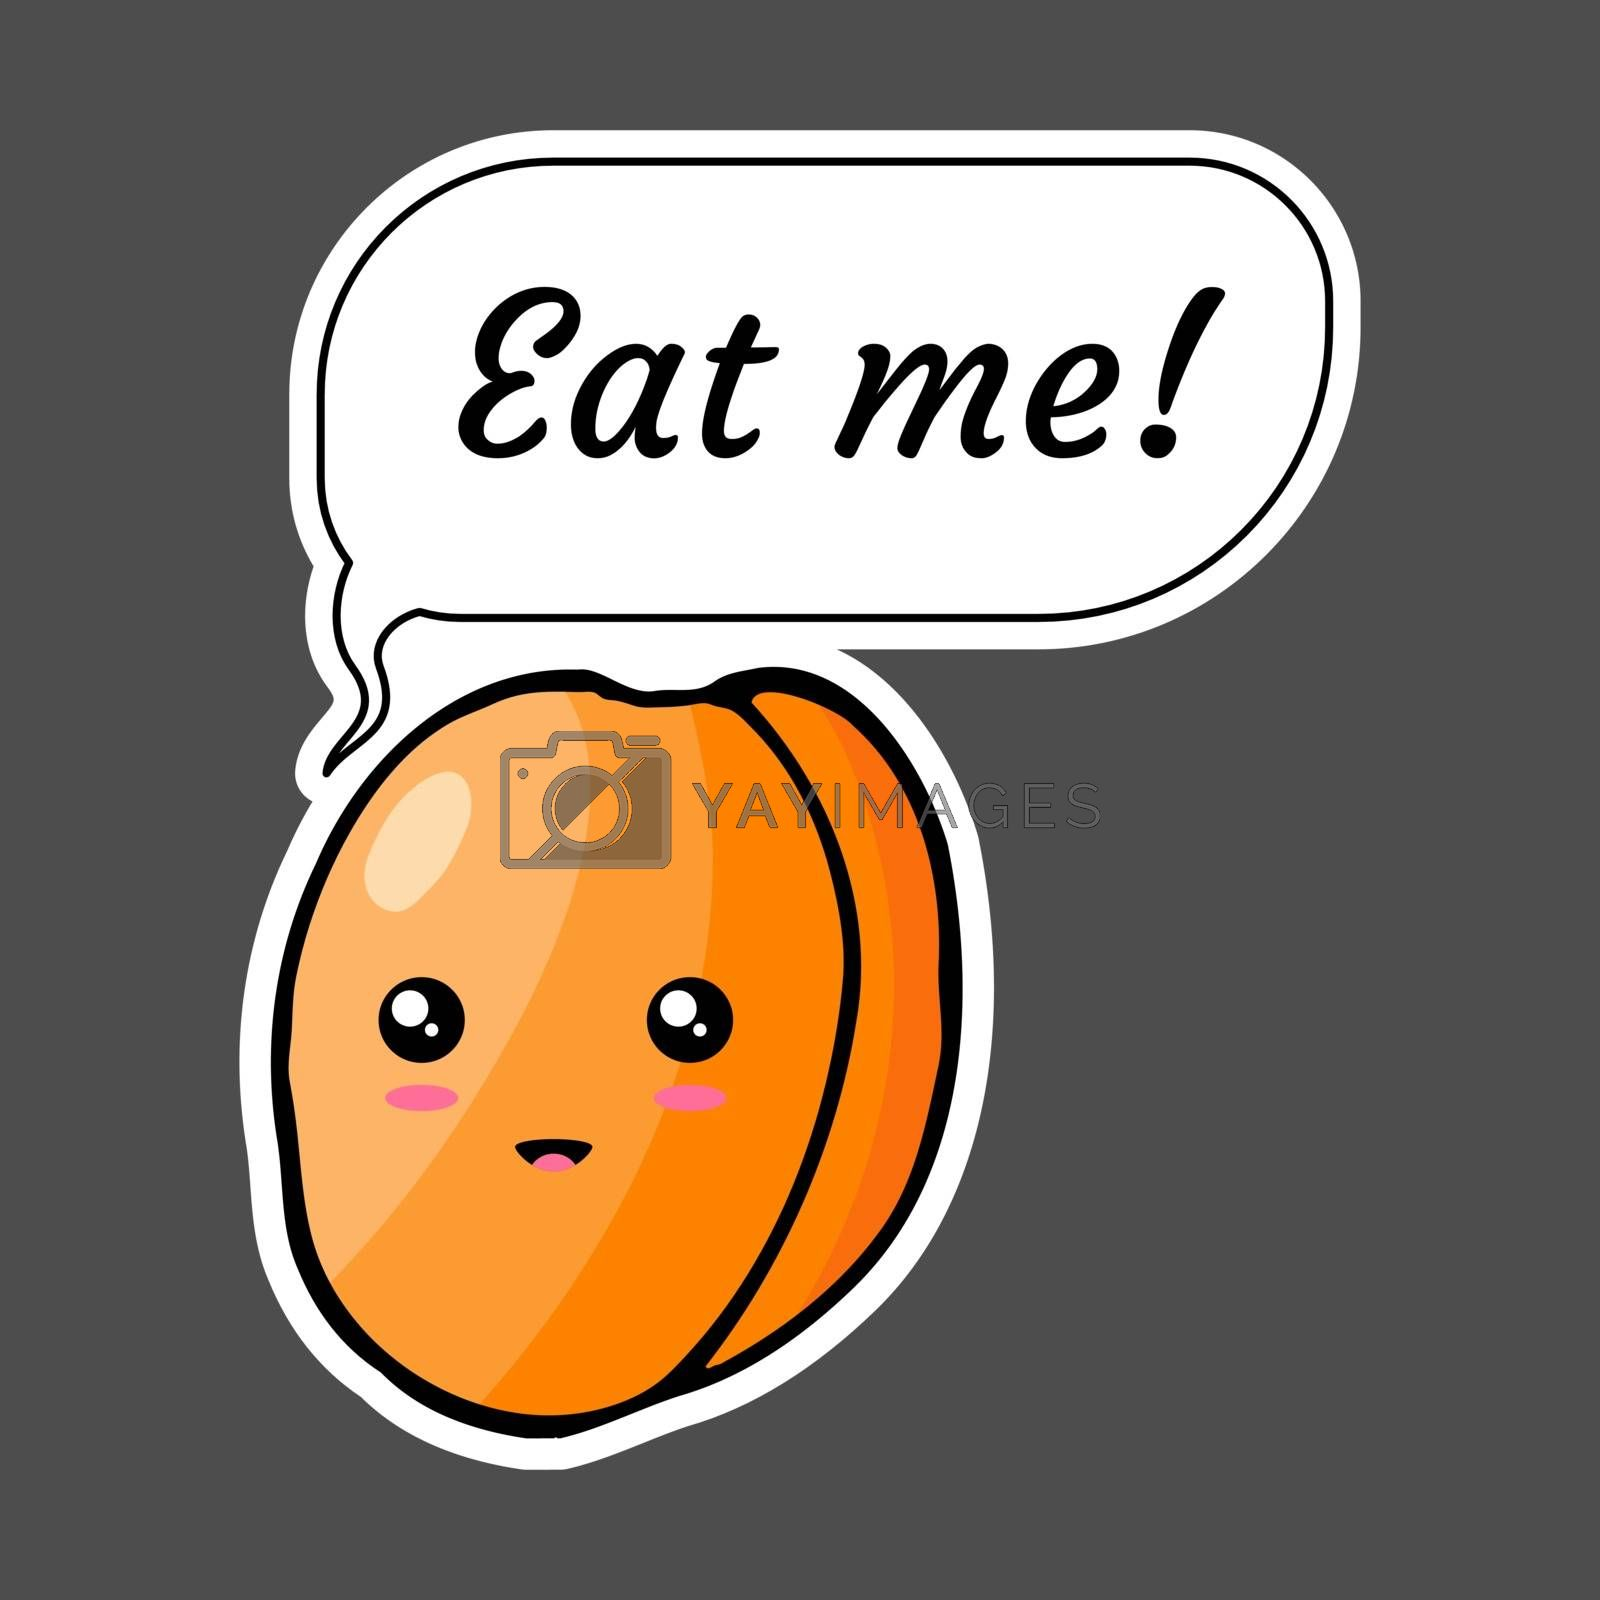 Kawaii sticker colorful cartoon apricot with speech bubble 'Eat me!'. Vector illustration isolated on dark background.